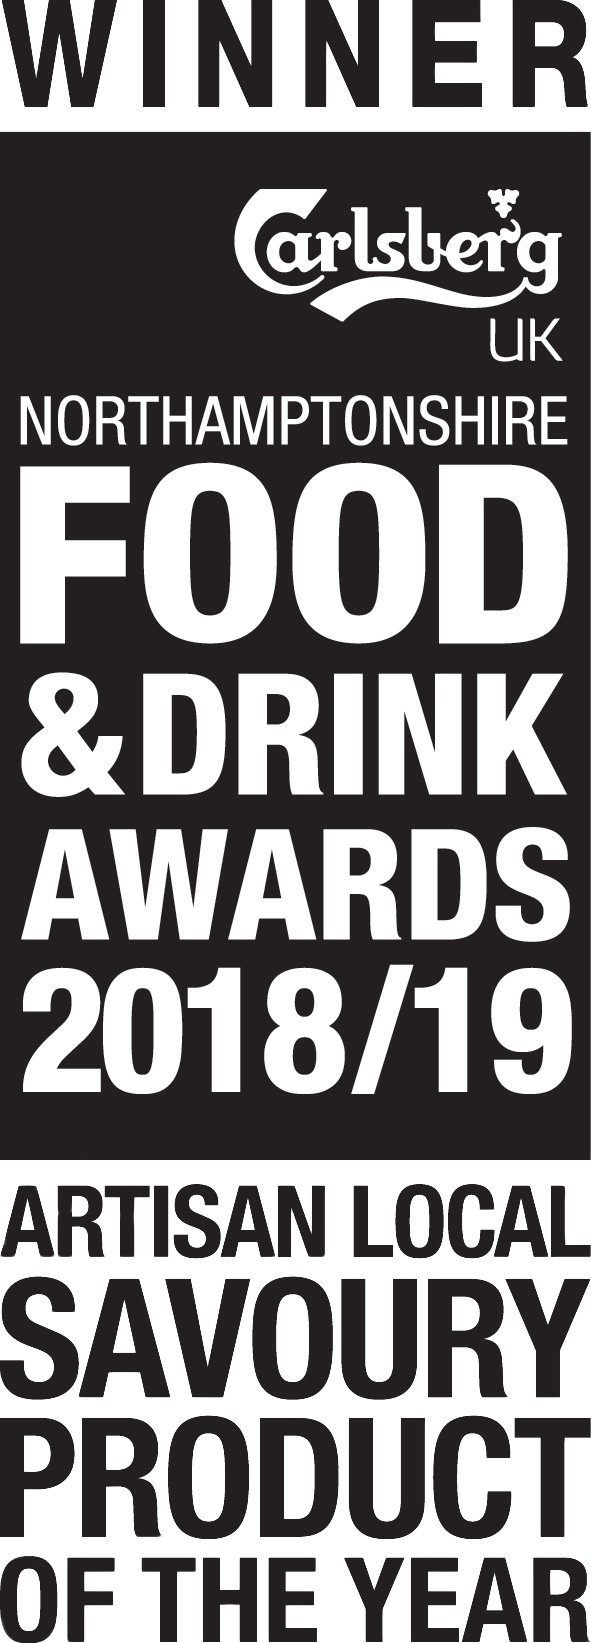 Savoury Product of the Year